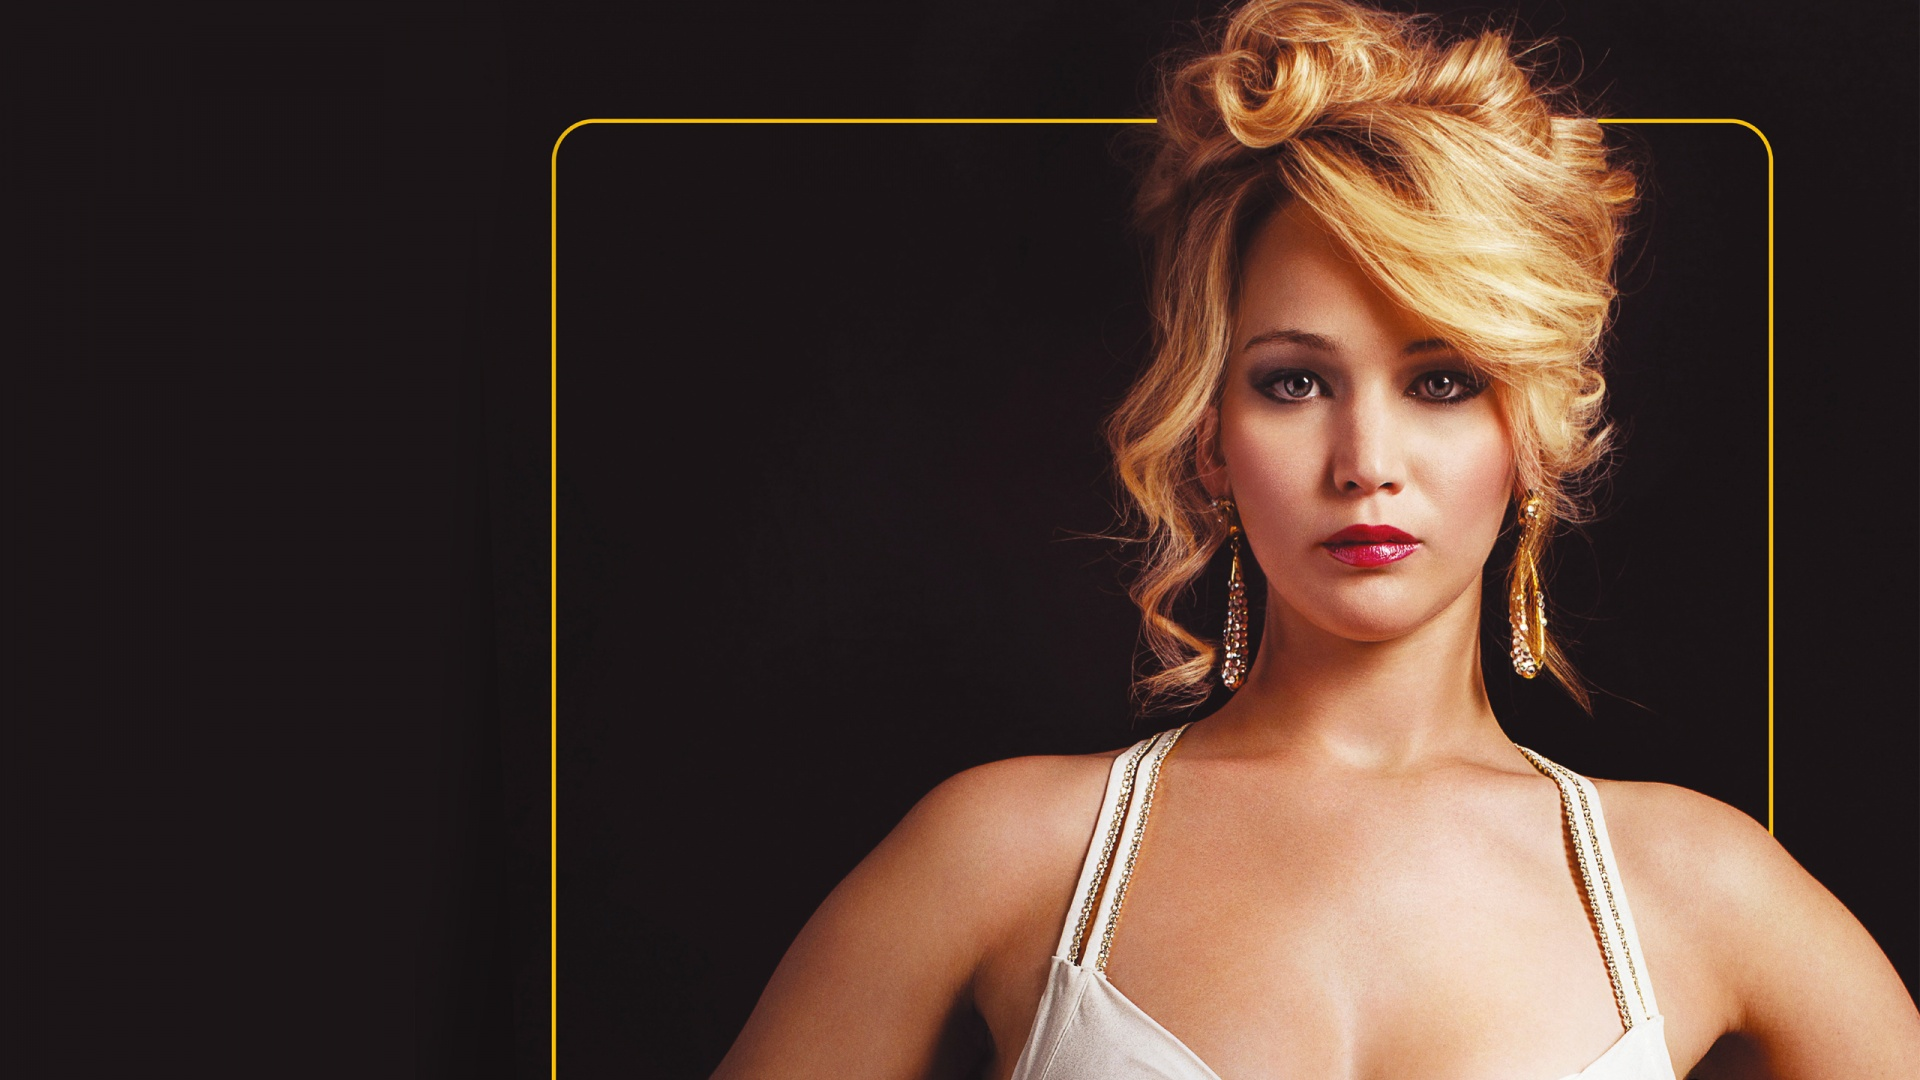 jennifer lawrence wallpapers hd A6